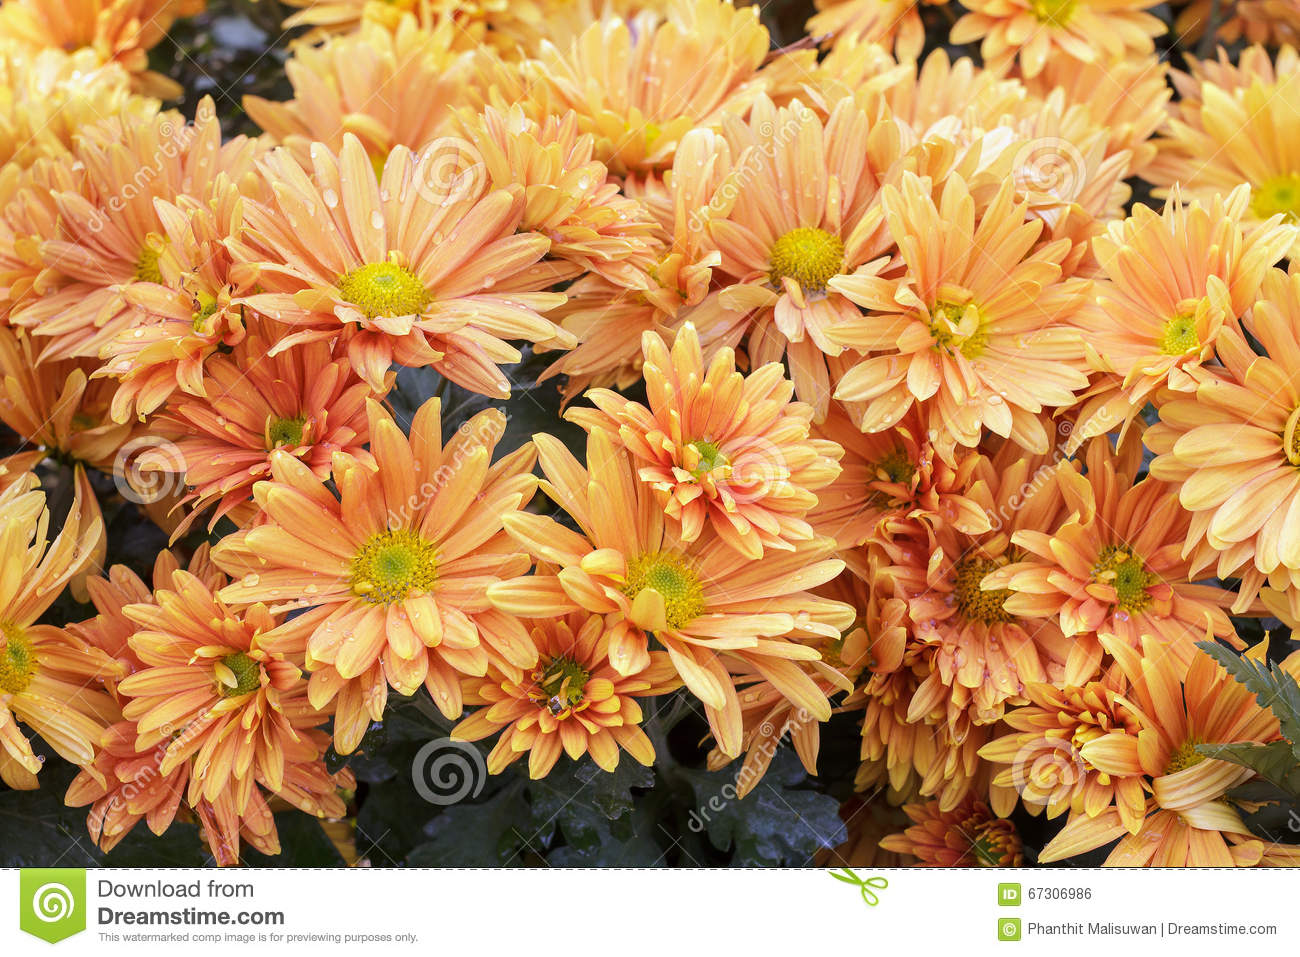 Orange flower with long thin petals a yellow center stock photo download orange flower with long thin petals a yellow center stock photo image of mightylinksfo